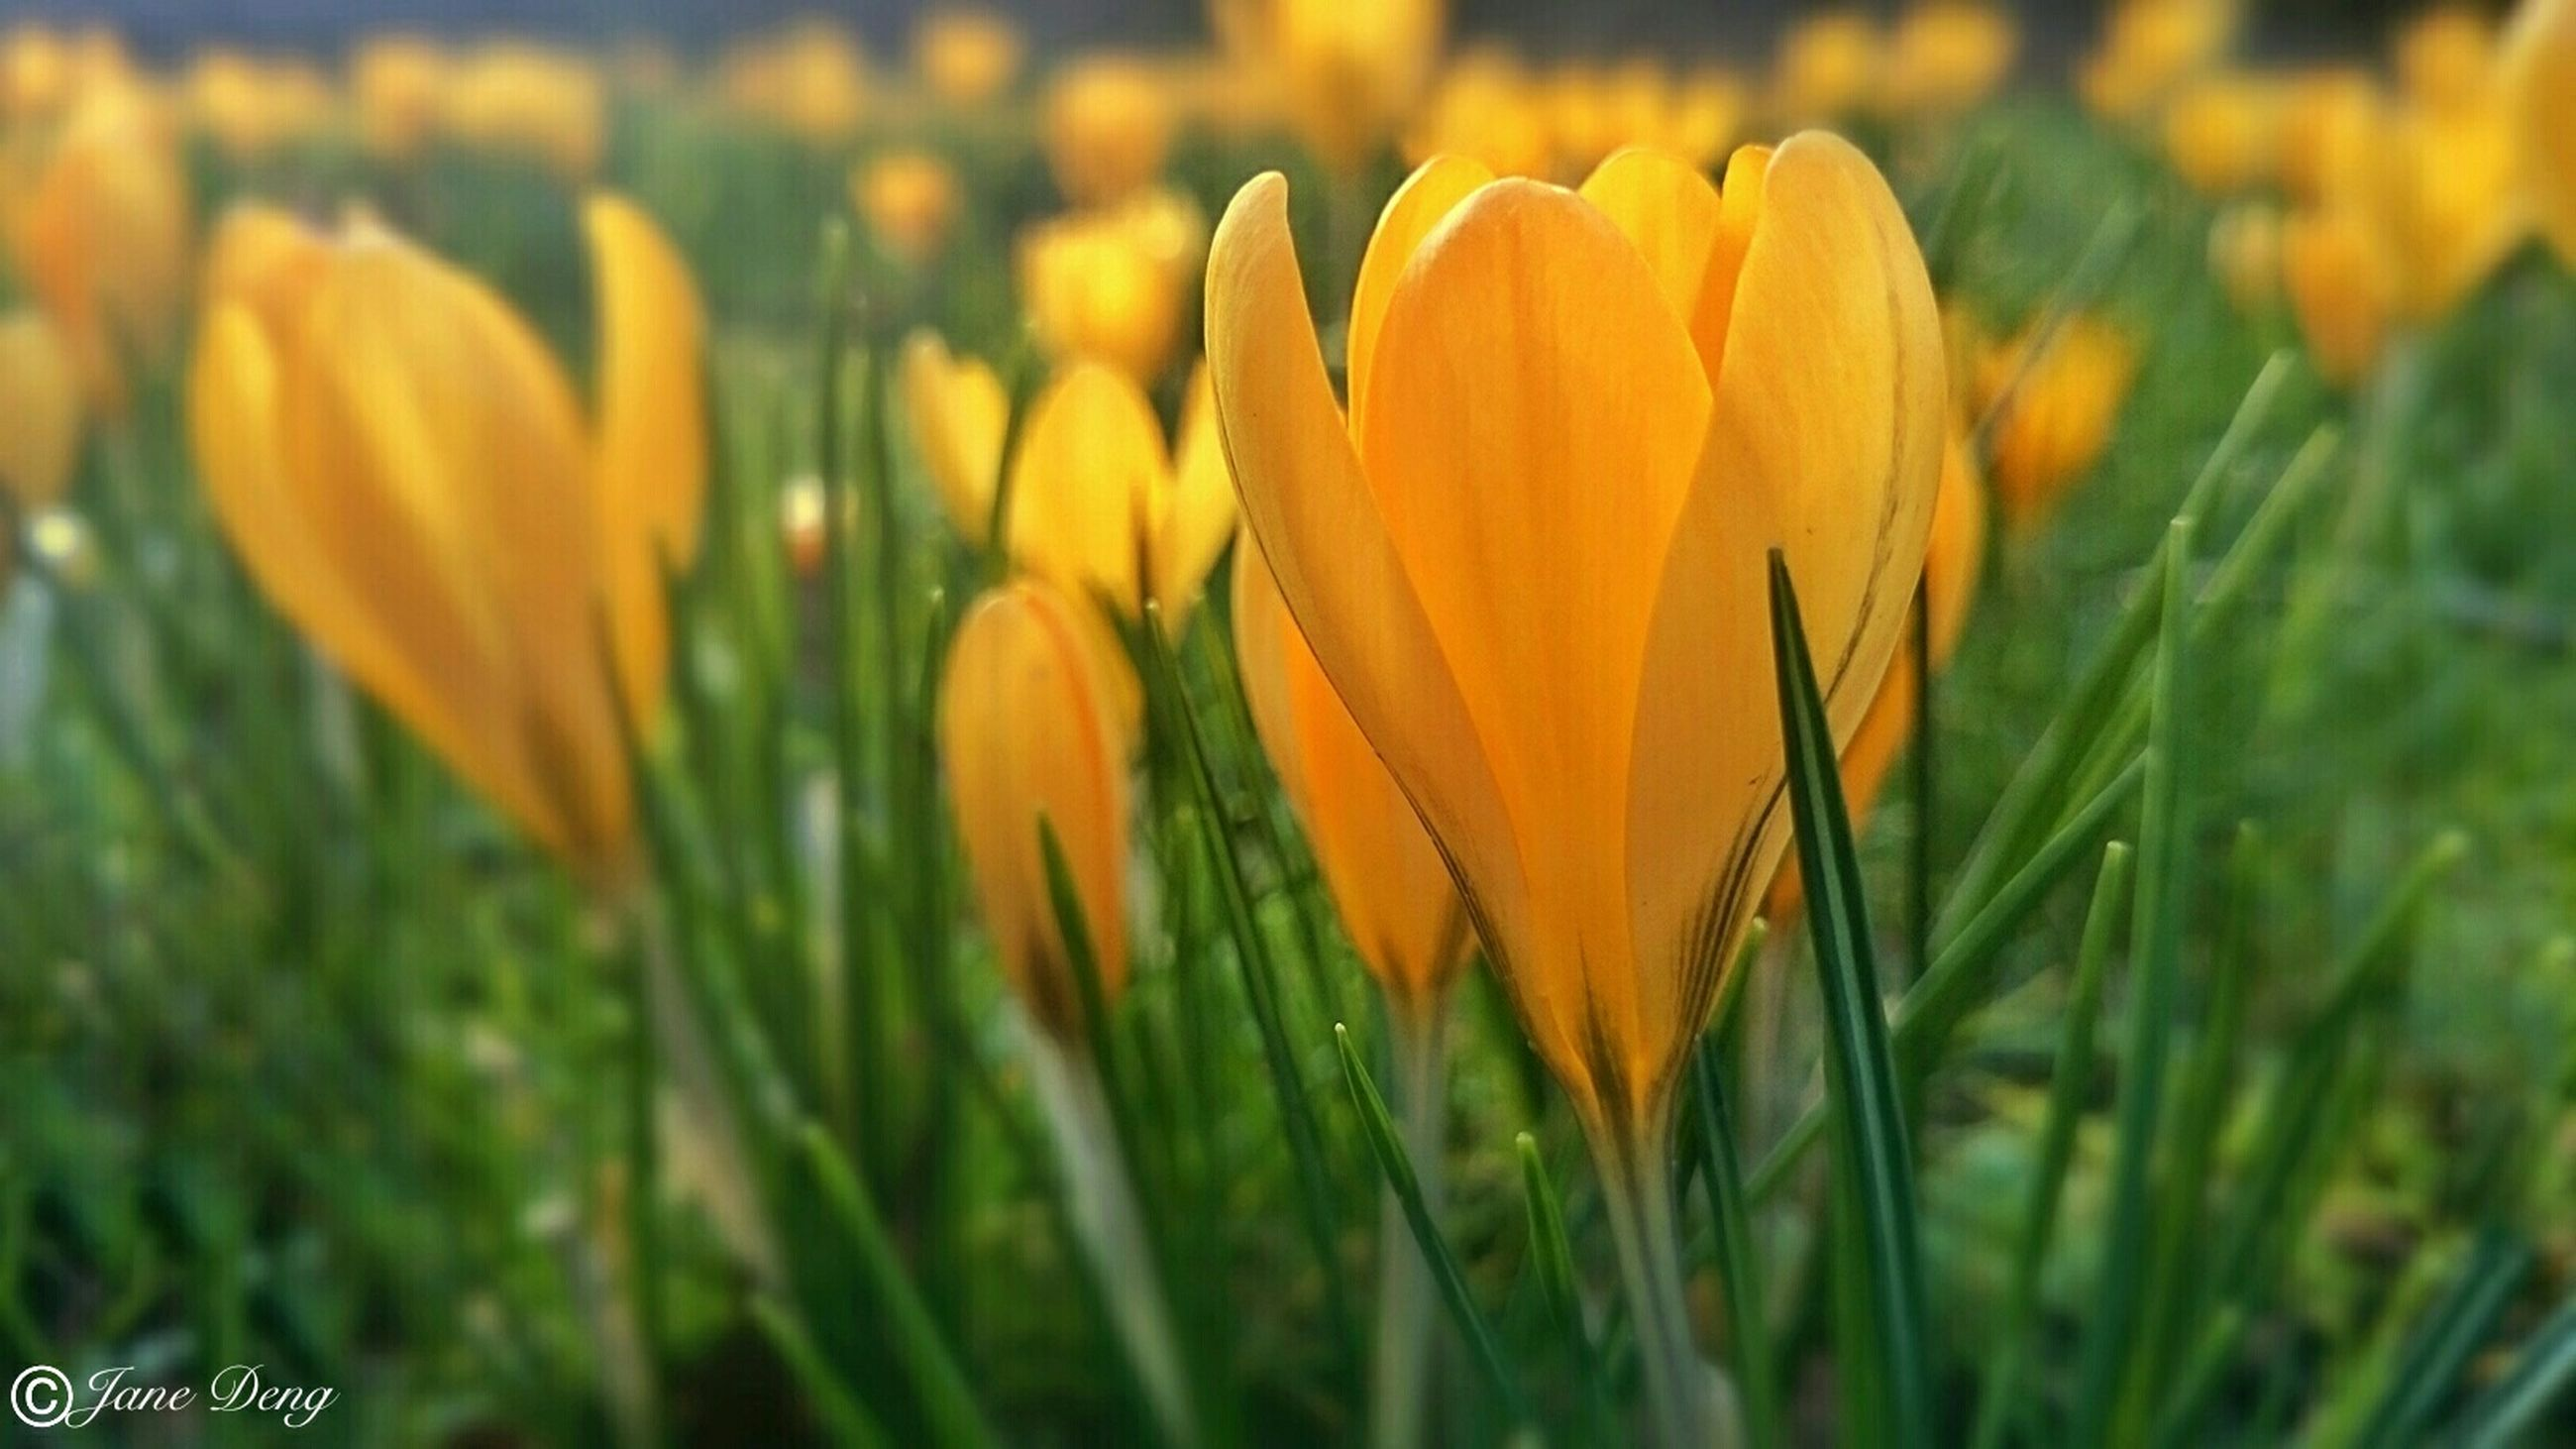 flower, growth, fragility, freshness, yellow, field, beauty in nature, petal, plant, focus on foreground, close-up, nature, flower head, blooming, selective focus, grass, stem, orange color, tulip, in bloom